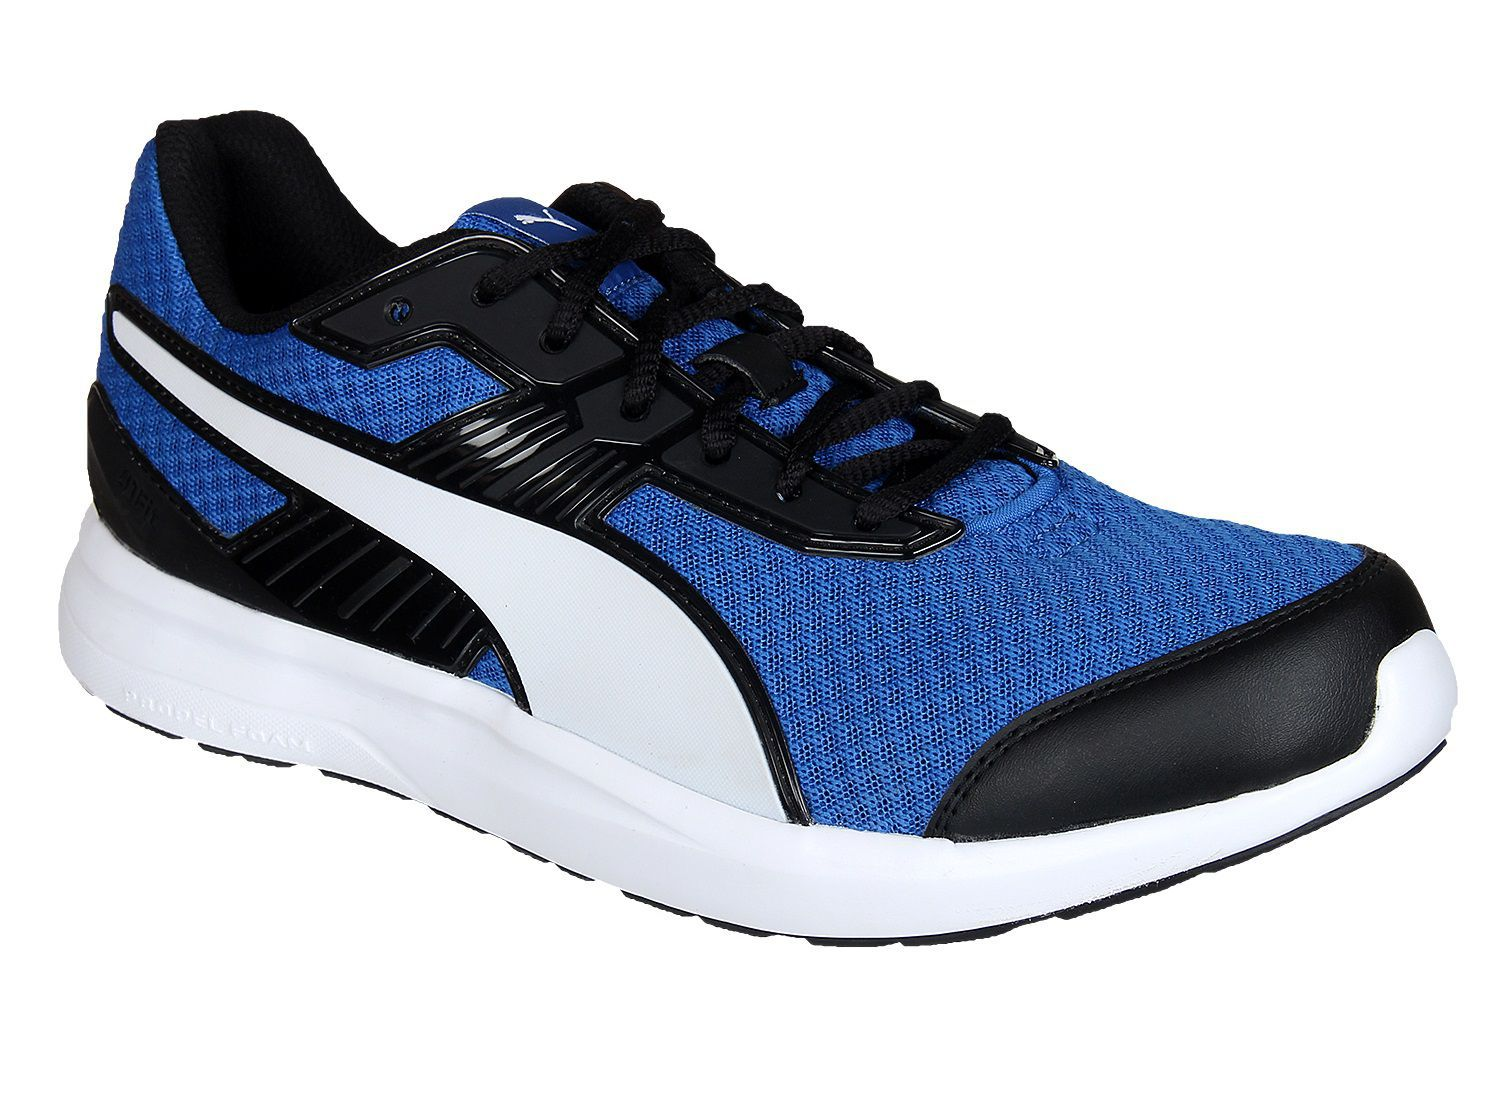 eec51fa0d Puma Men Escaper Pro Blue Running Shoes - Buy Puma Men Escaper Pro Blue Running  Shoes Online at Best Prices in India on Snapdeal